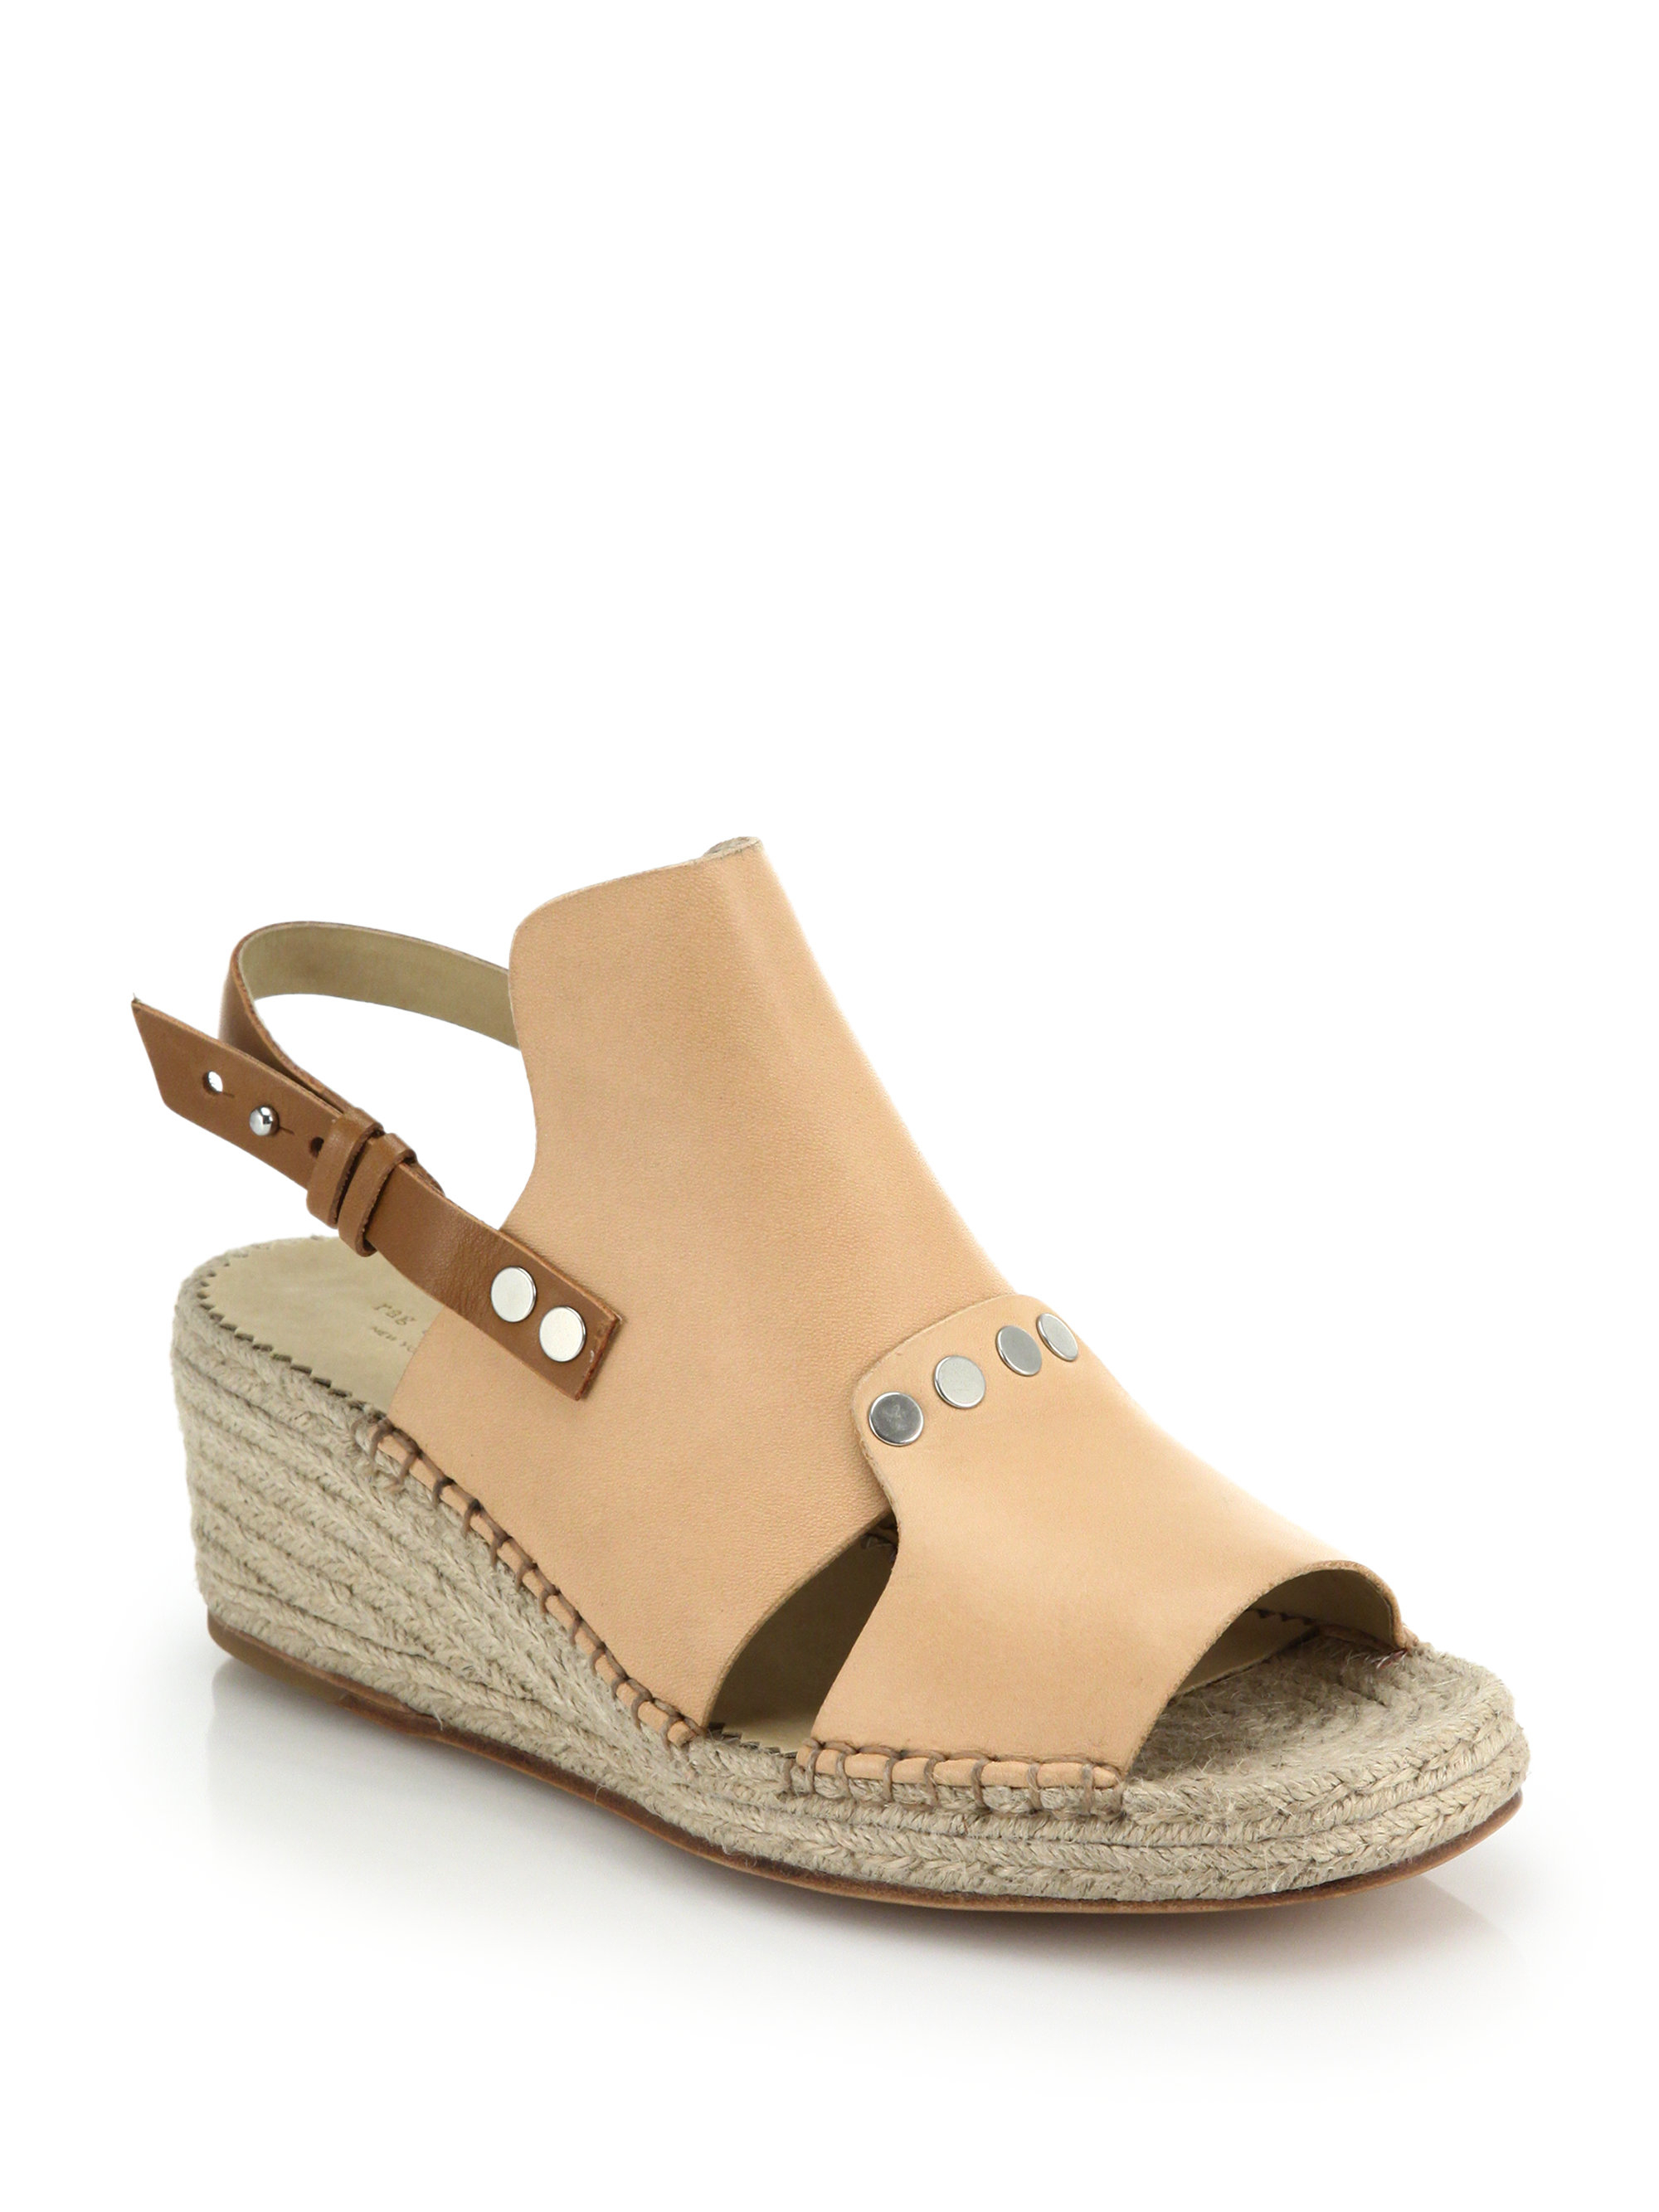 free shipping cost Rag & Bone Sayre II Wedges supply cheap online rt78gmGfJC